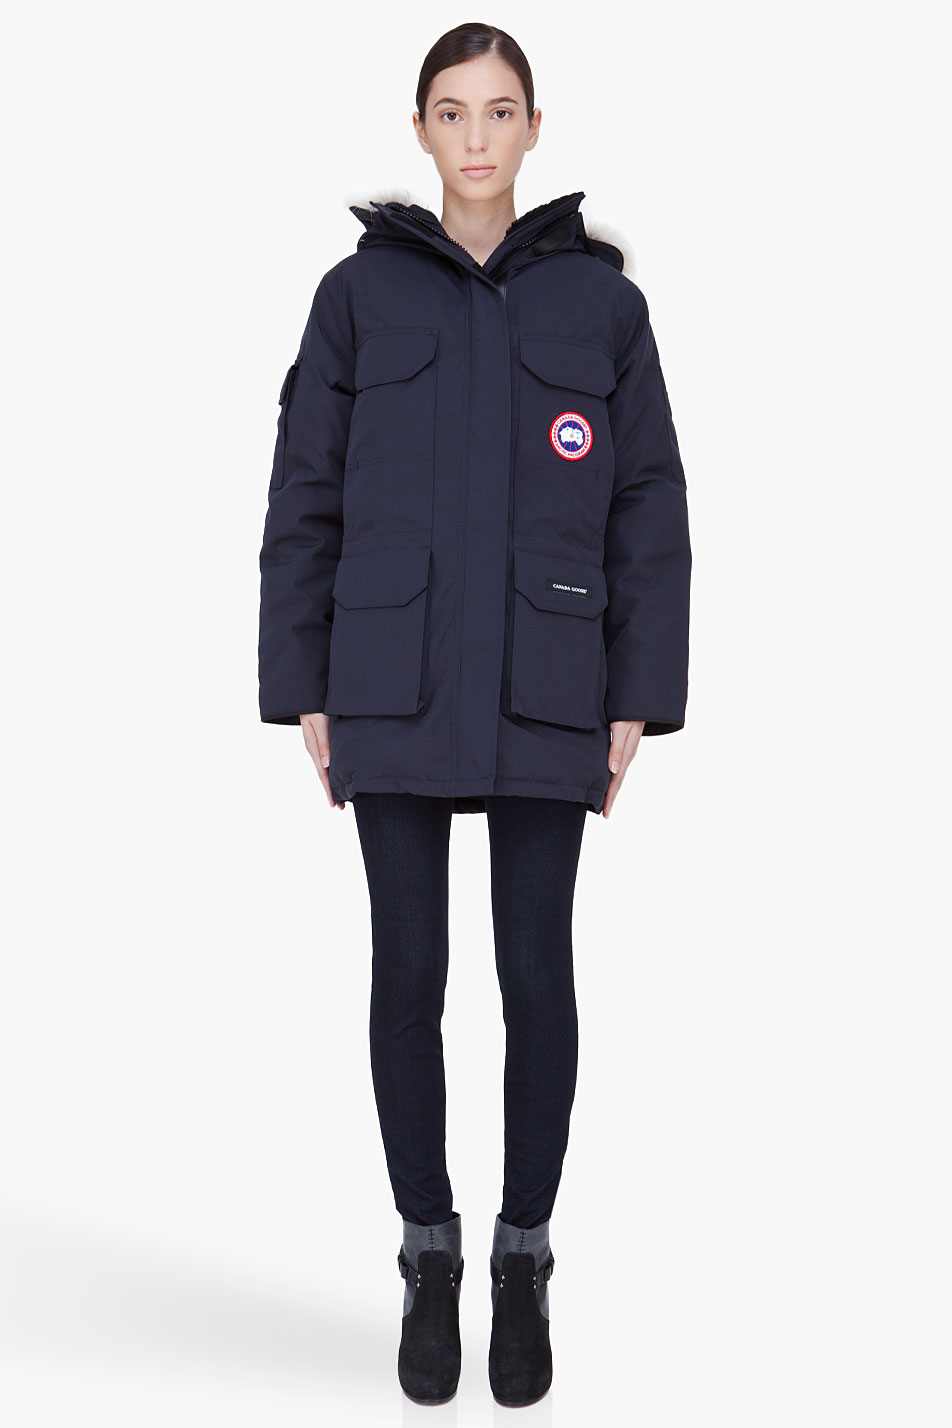 How to Spot a Fake Canada Goose Jacket – WWD